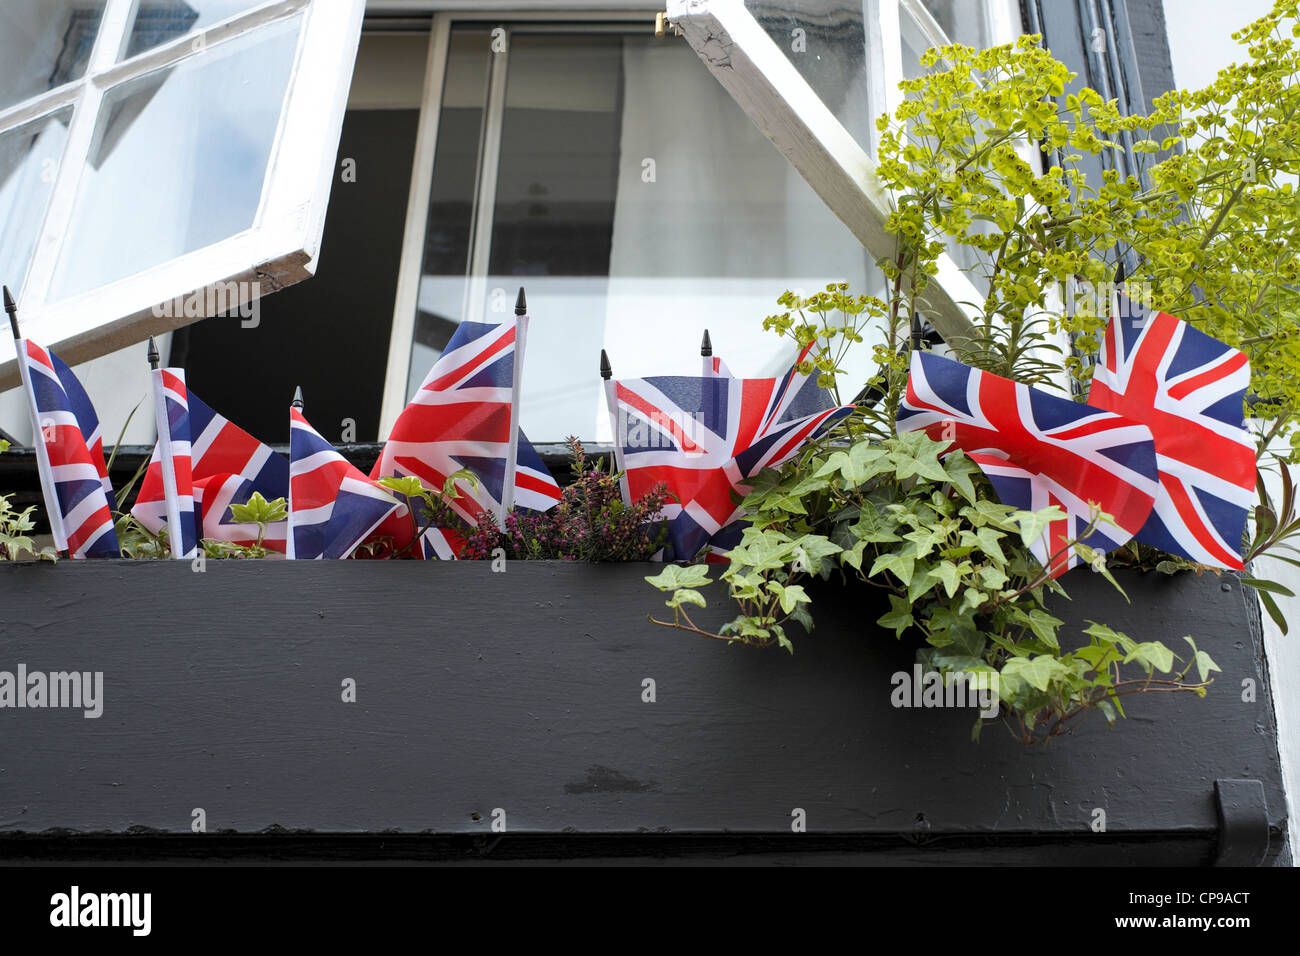 Small Union Jack British flags in a window box - Stock Image